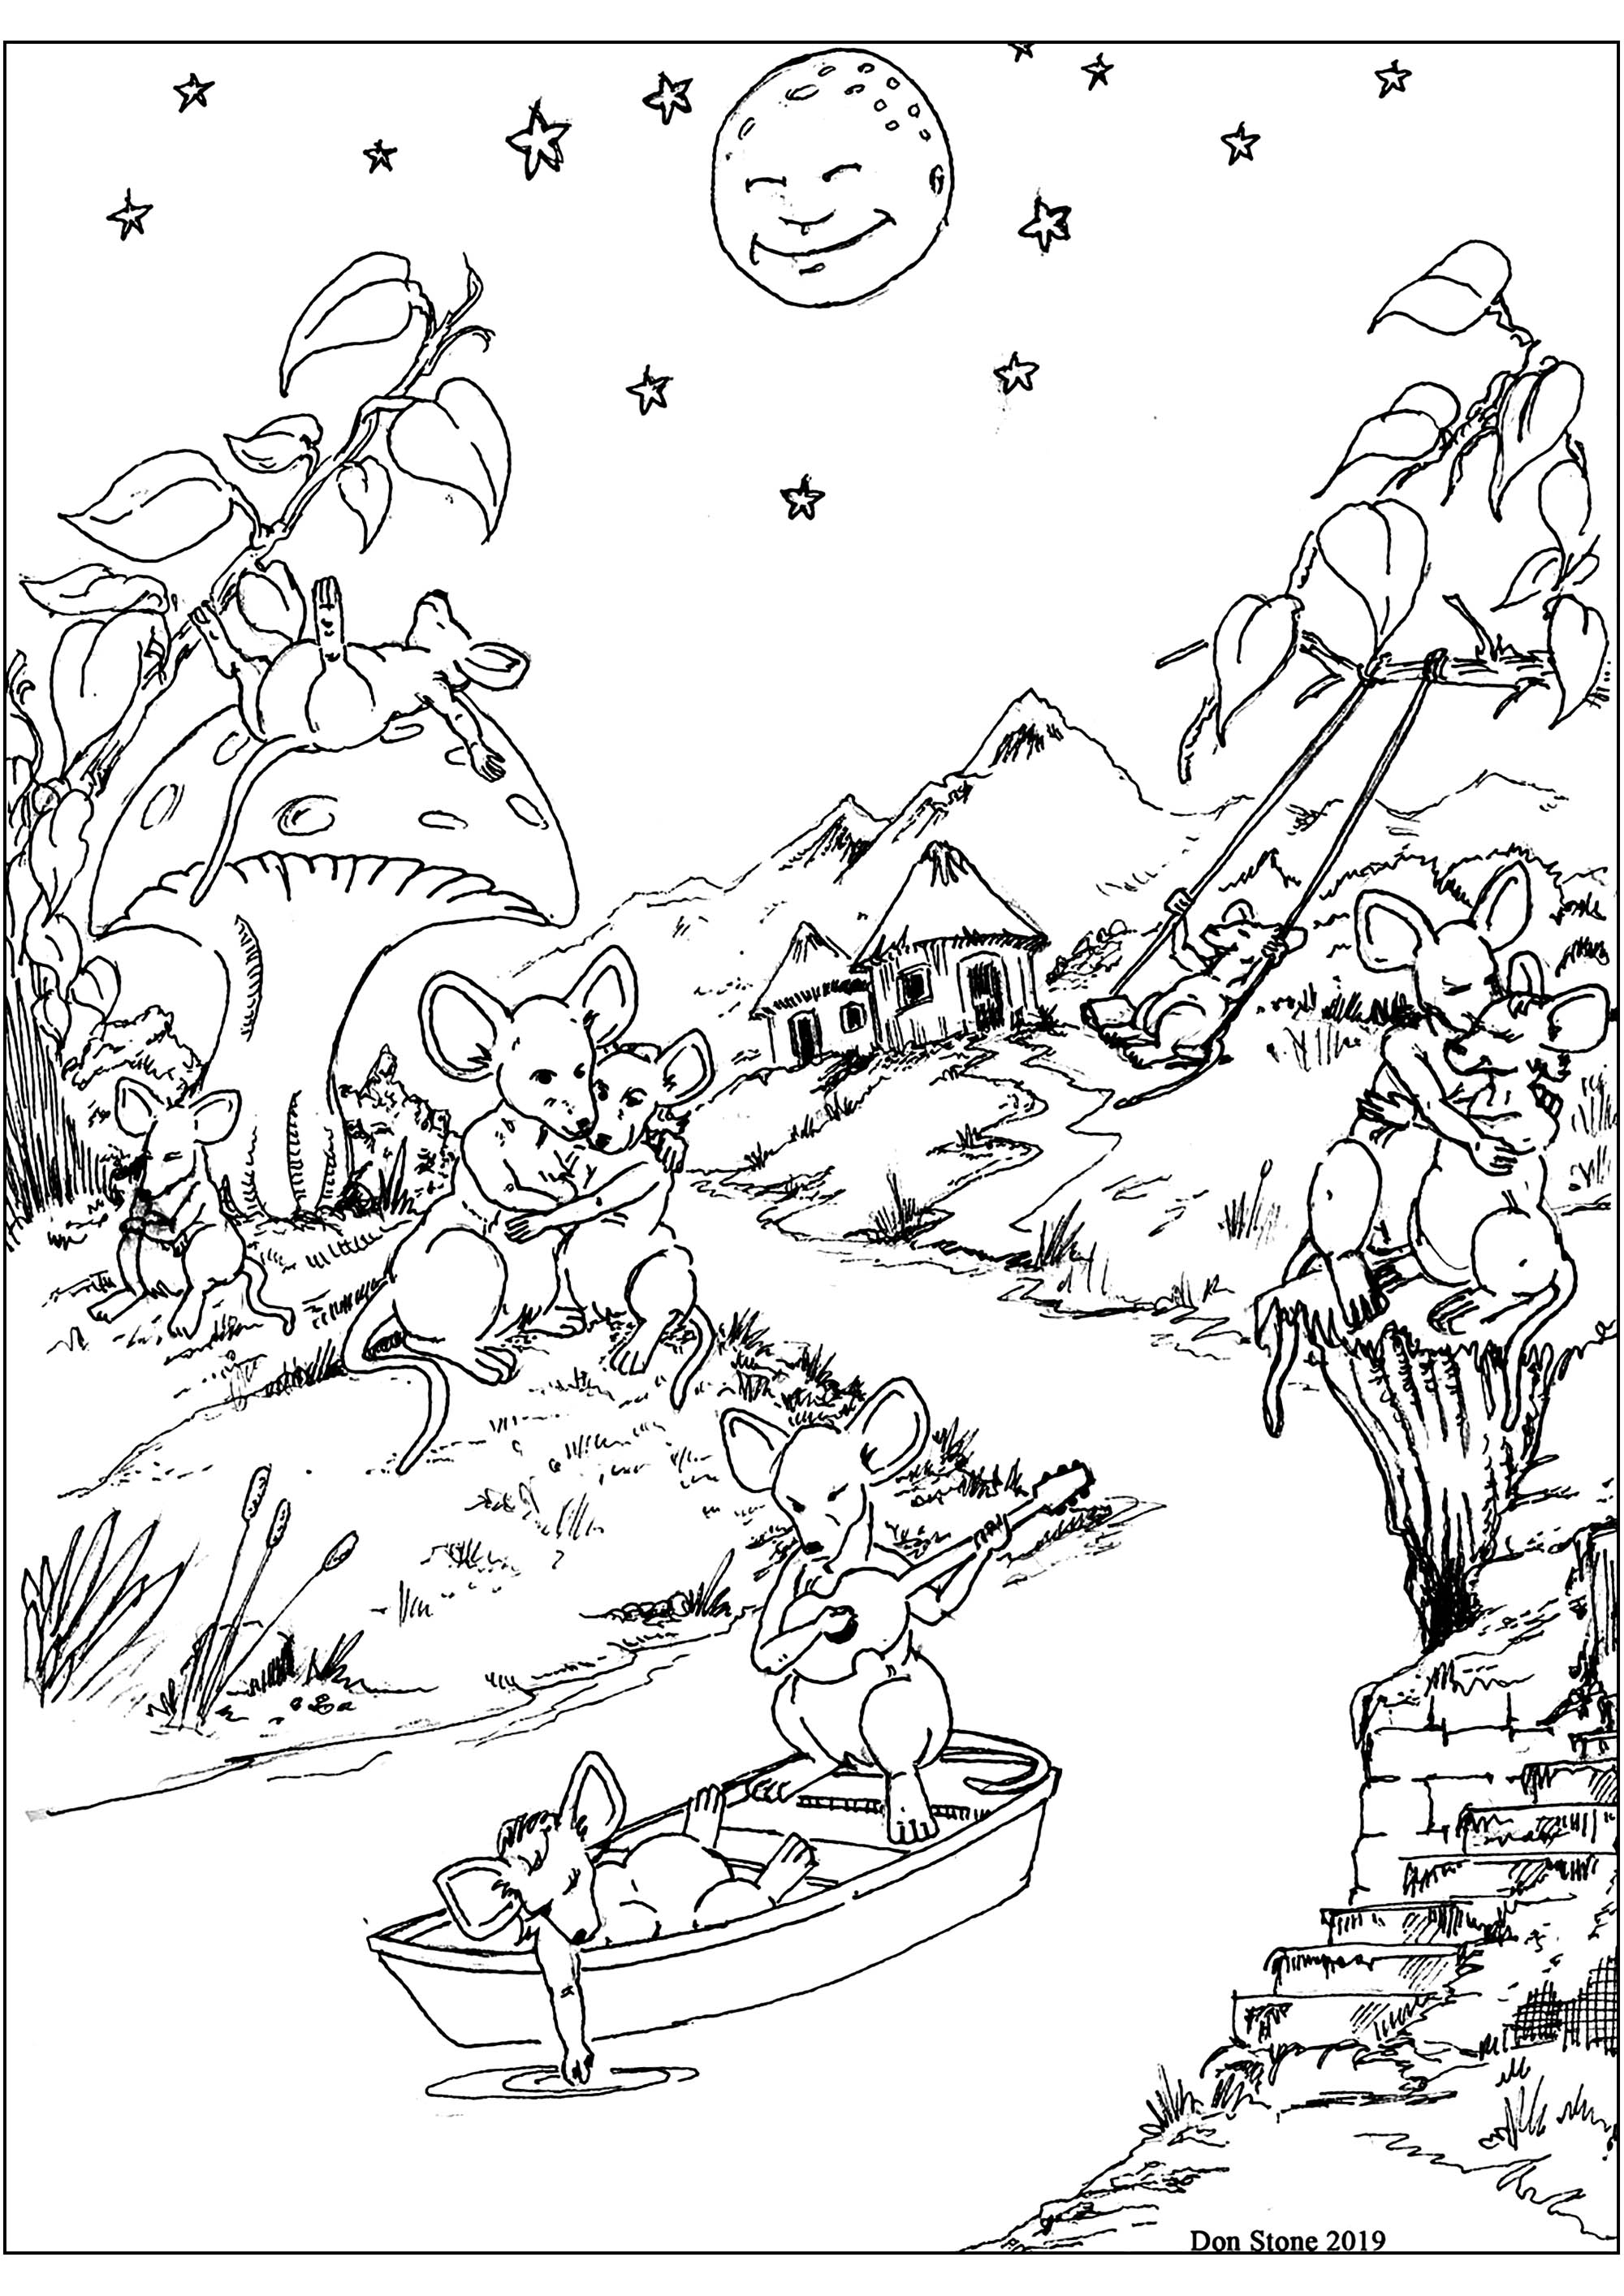 Original drawing of a pretty river with mice in a boat, on the banks, and on a mushroom